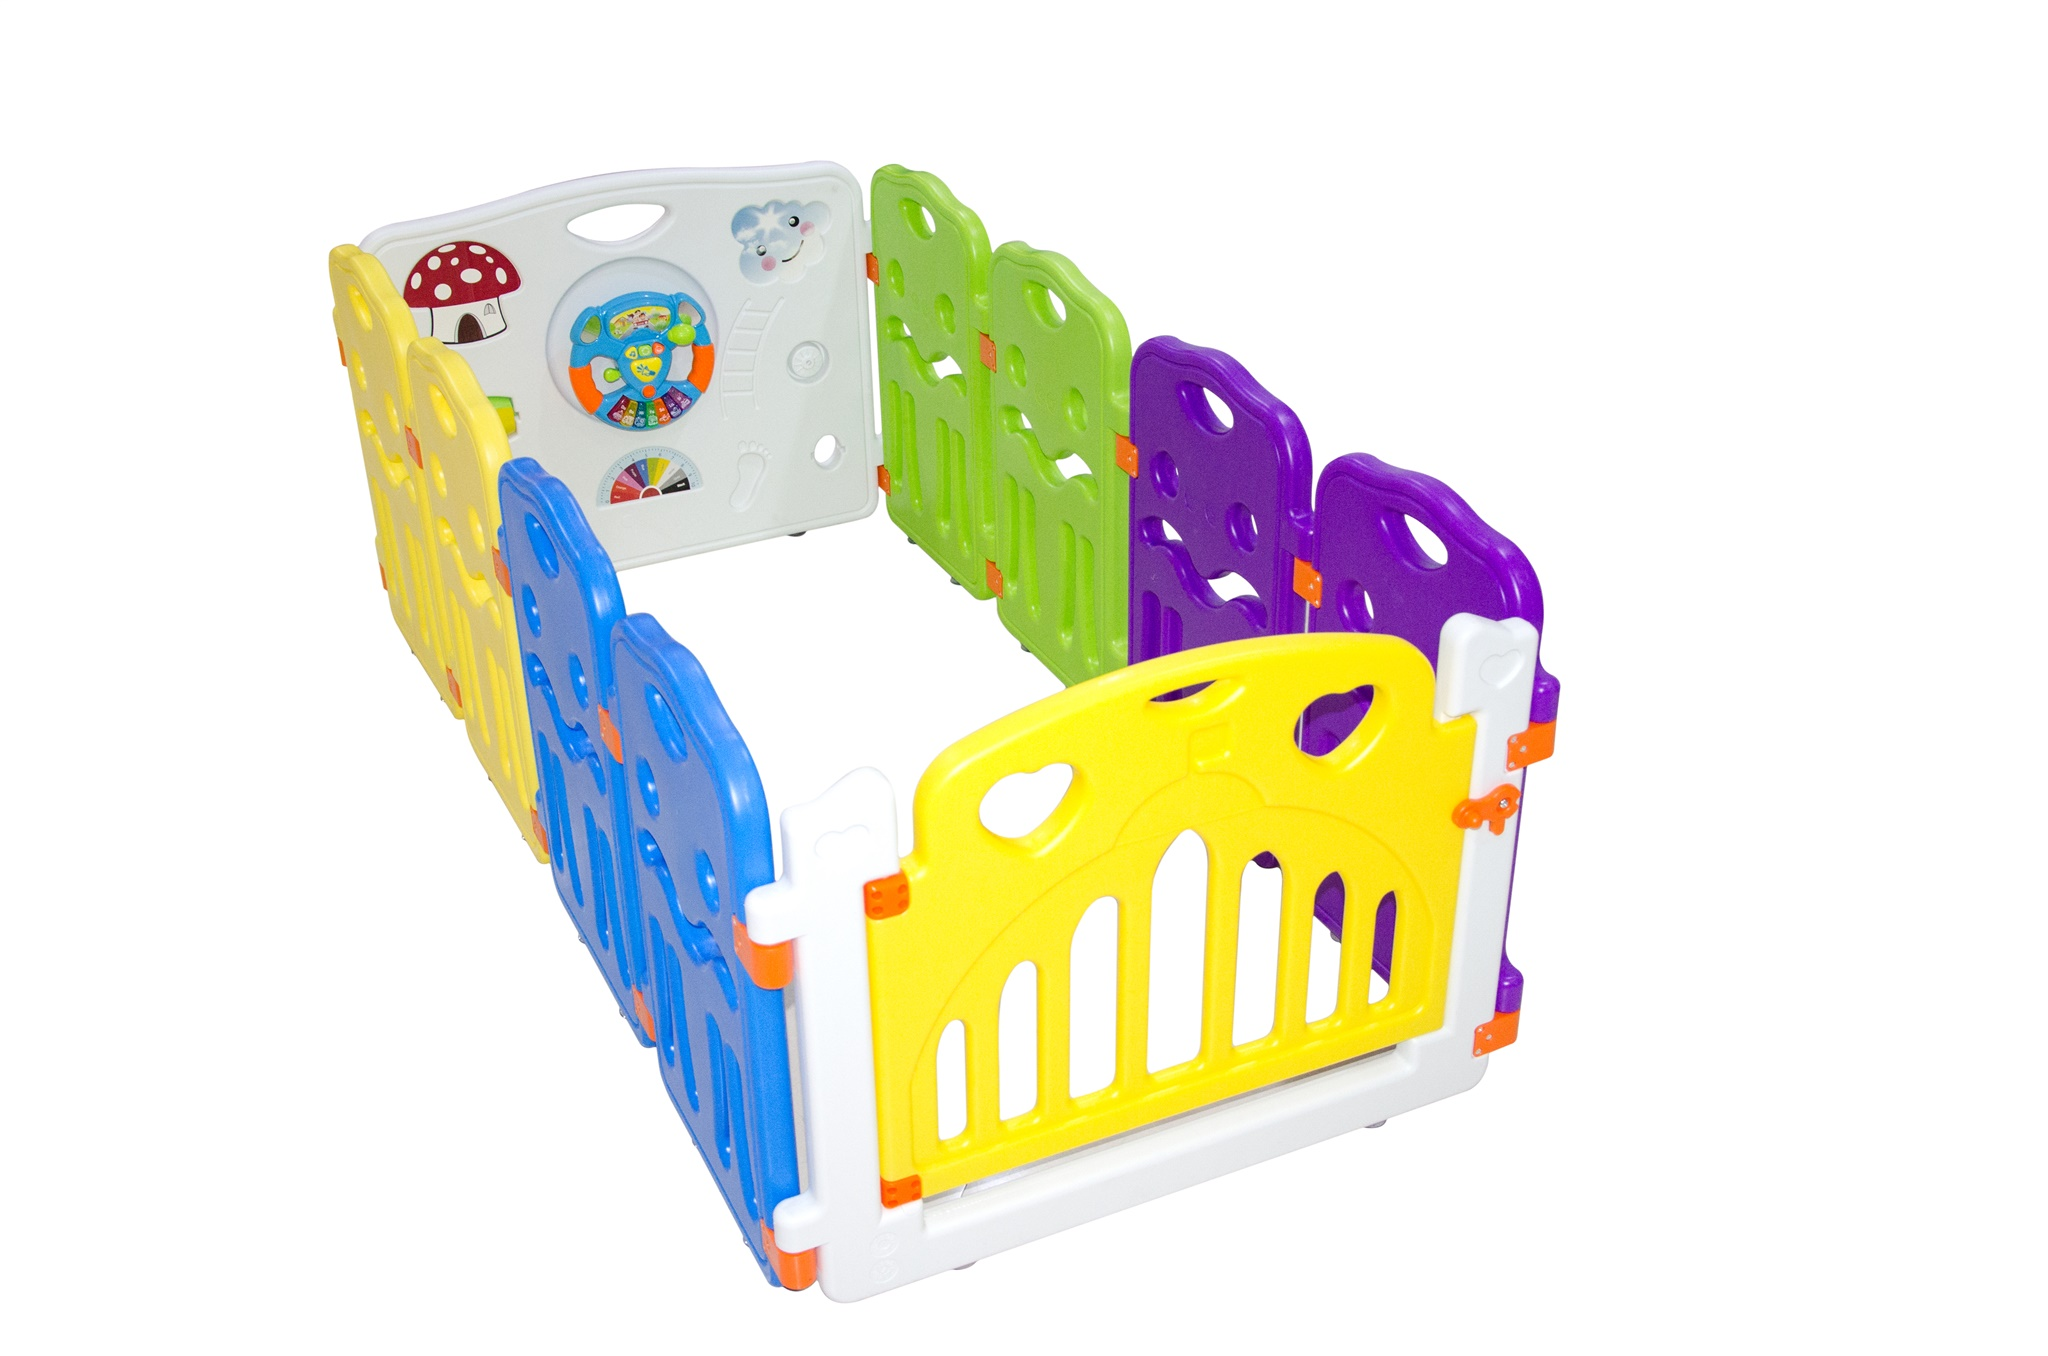 10 Panel Portable Foldable Kids Baby Indoor Outdoor Saftey Game